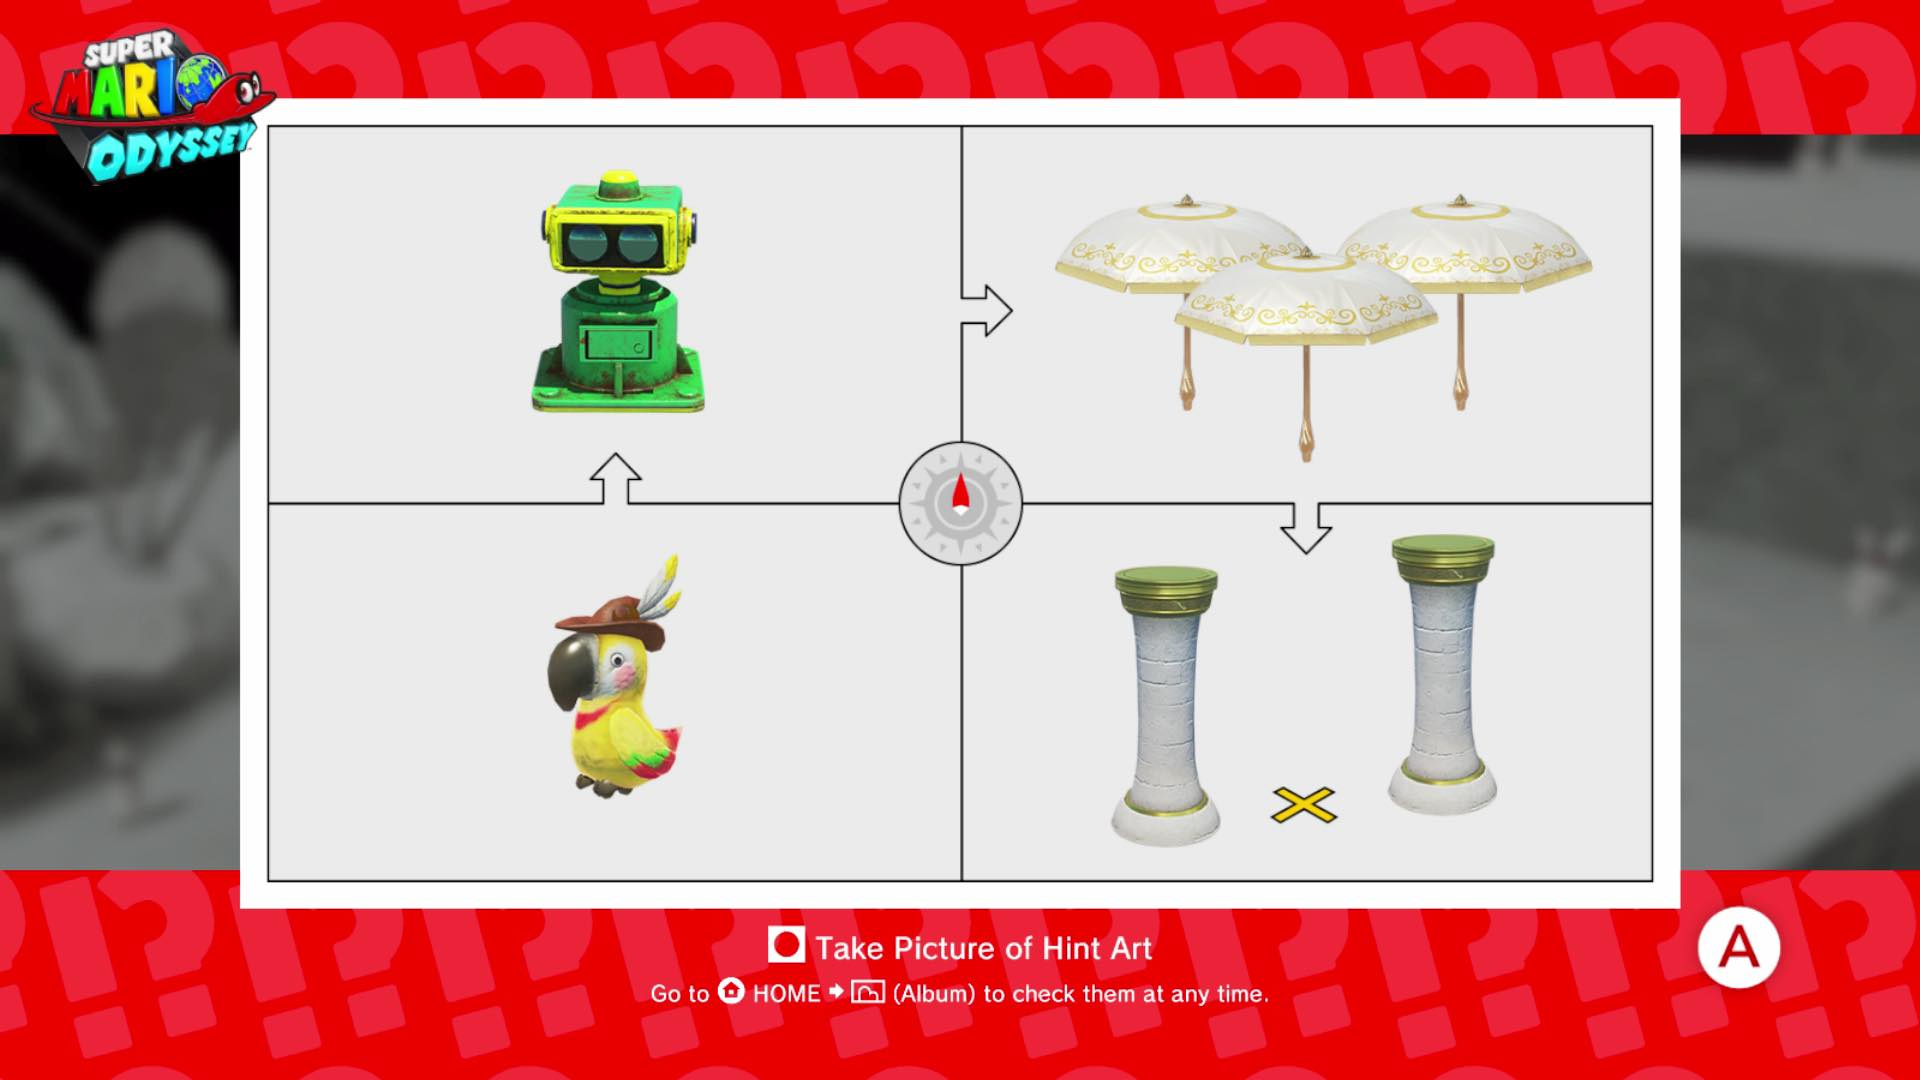 Super mario odyssey guide all hint art puzzle solutions for Super mario odyssey paintings